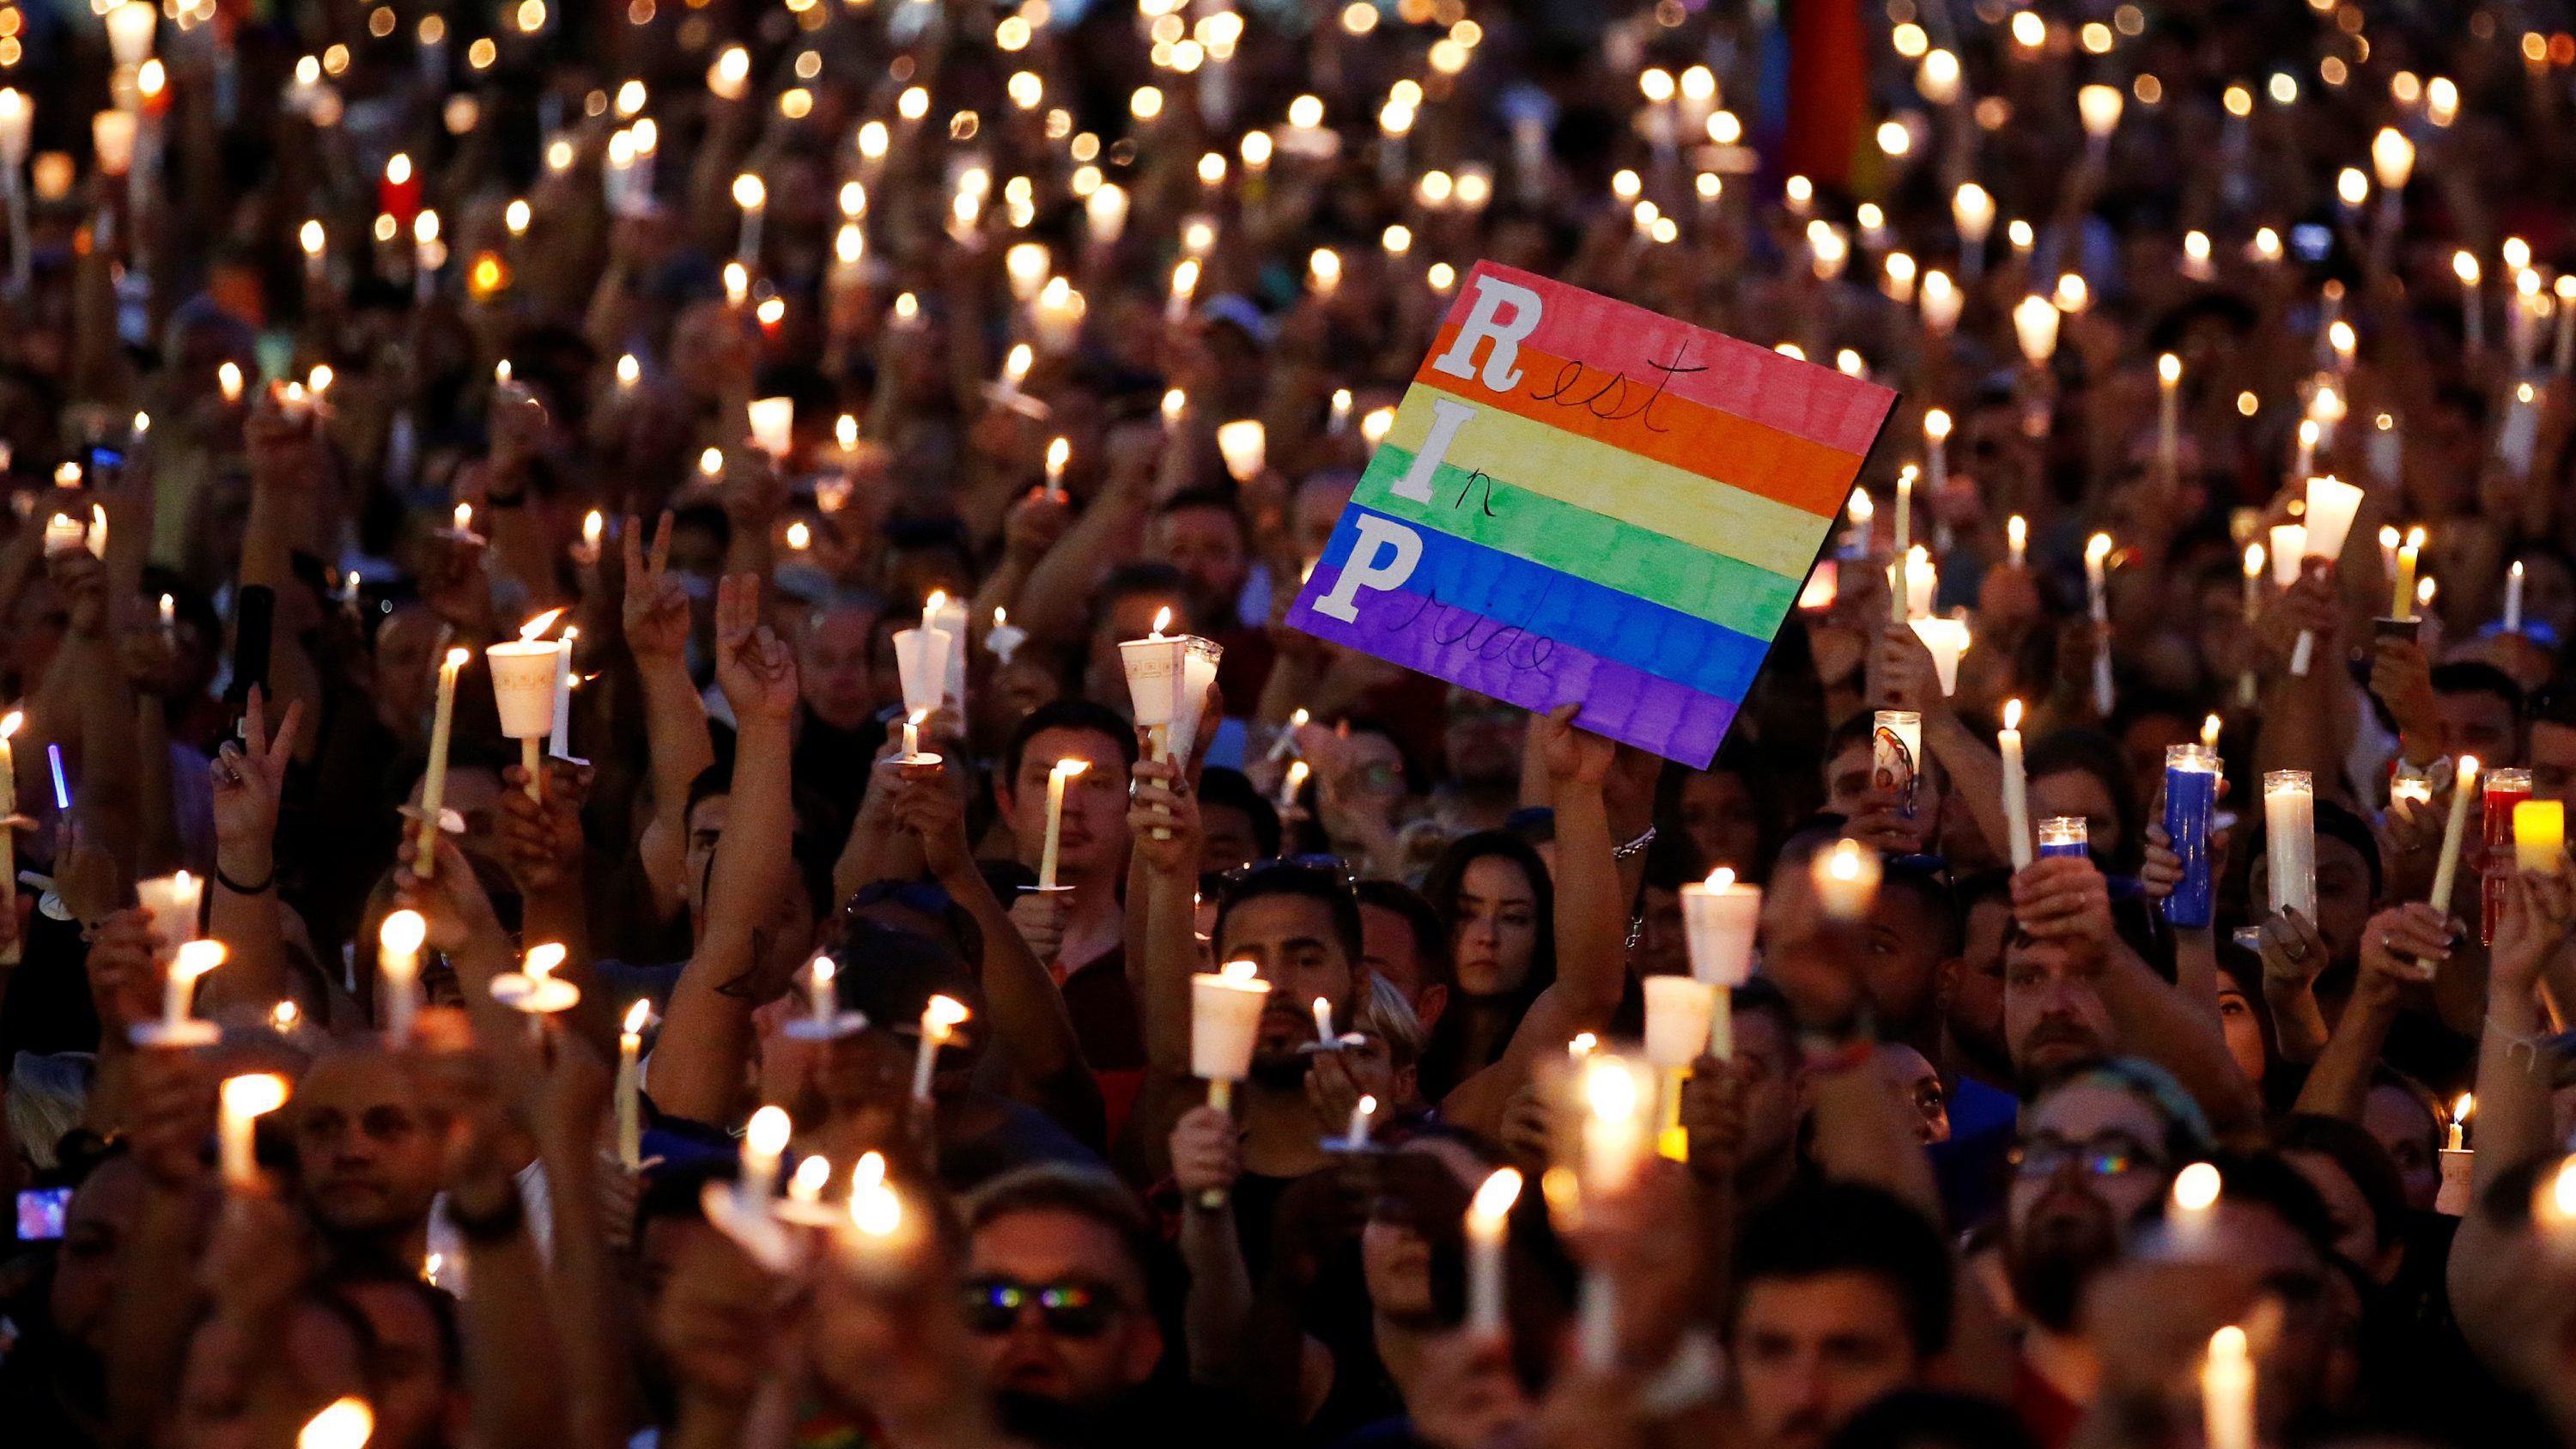 People take part in a candlelight memorial service the day after a mass shooting at the Pulse gay nightclub in Orlando, Florida, U.S. June 13, 2016.